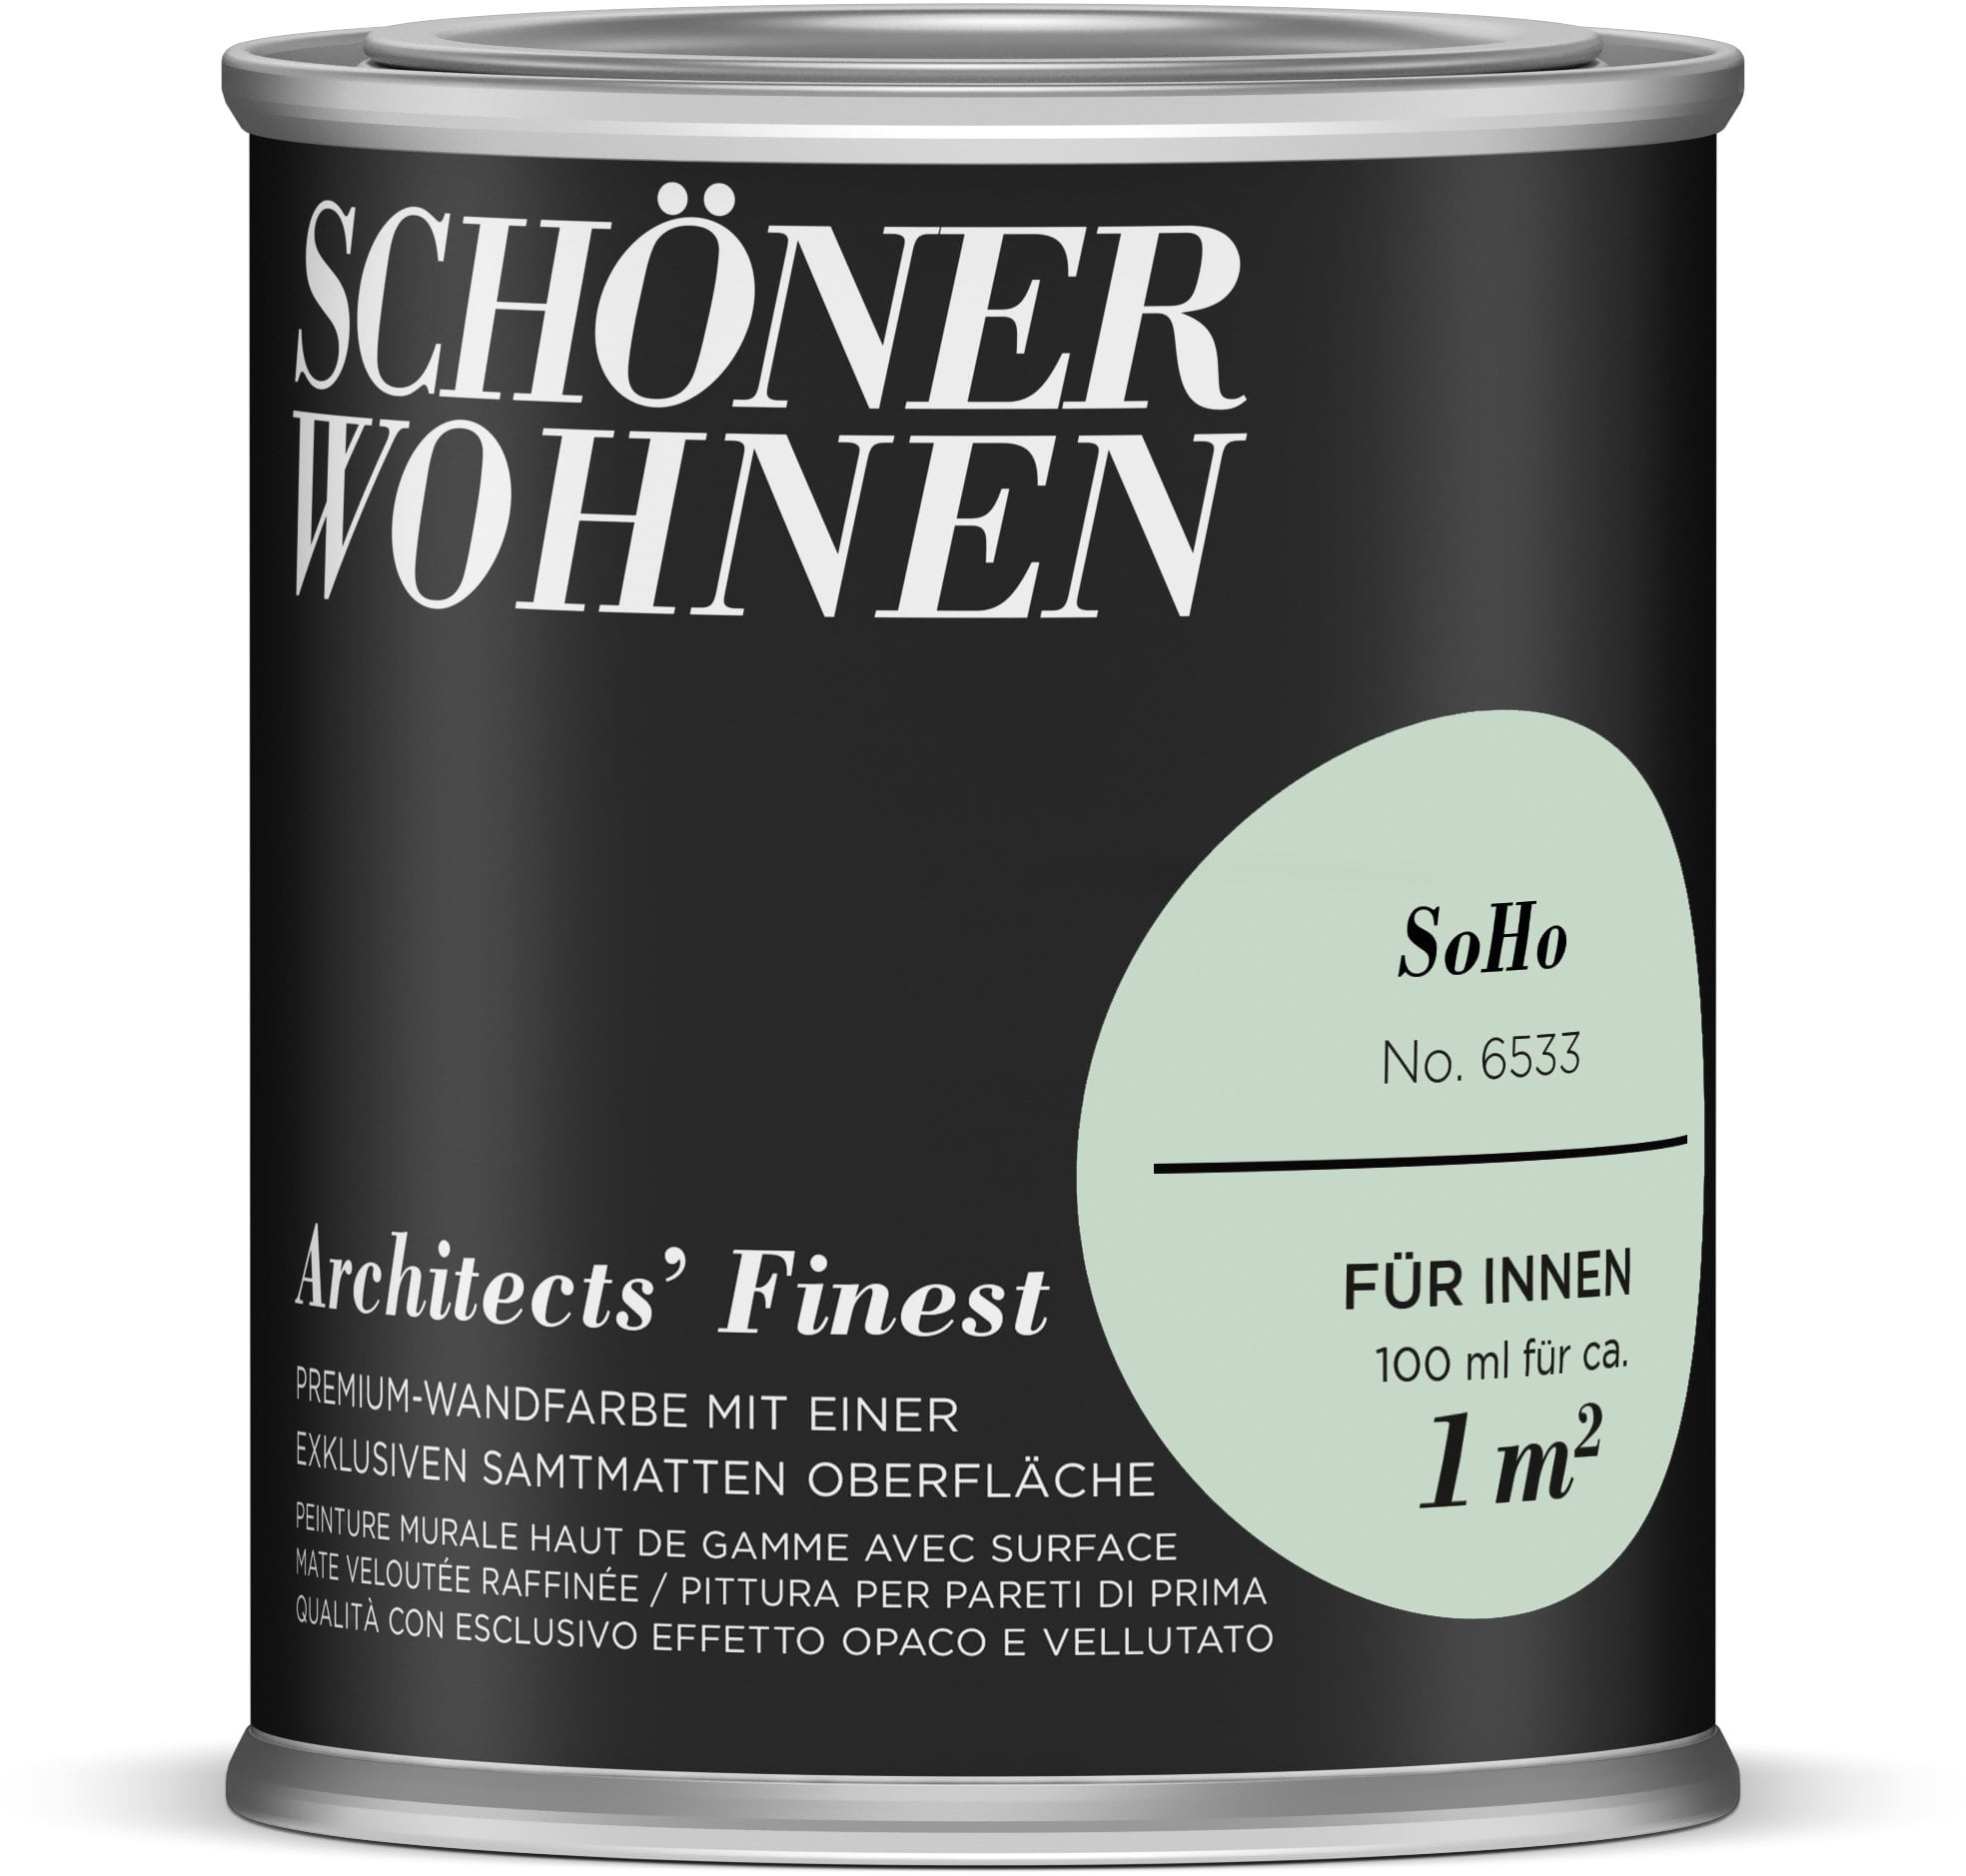 sch ner wohnen architects 39 finest 100 ml soho migros. Black Bedroom Furniture Sets. Home Design Ideas